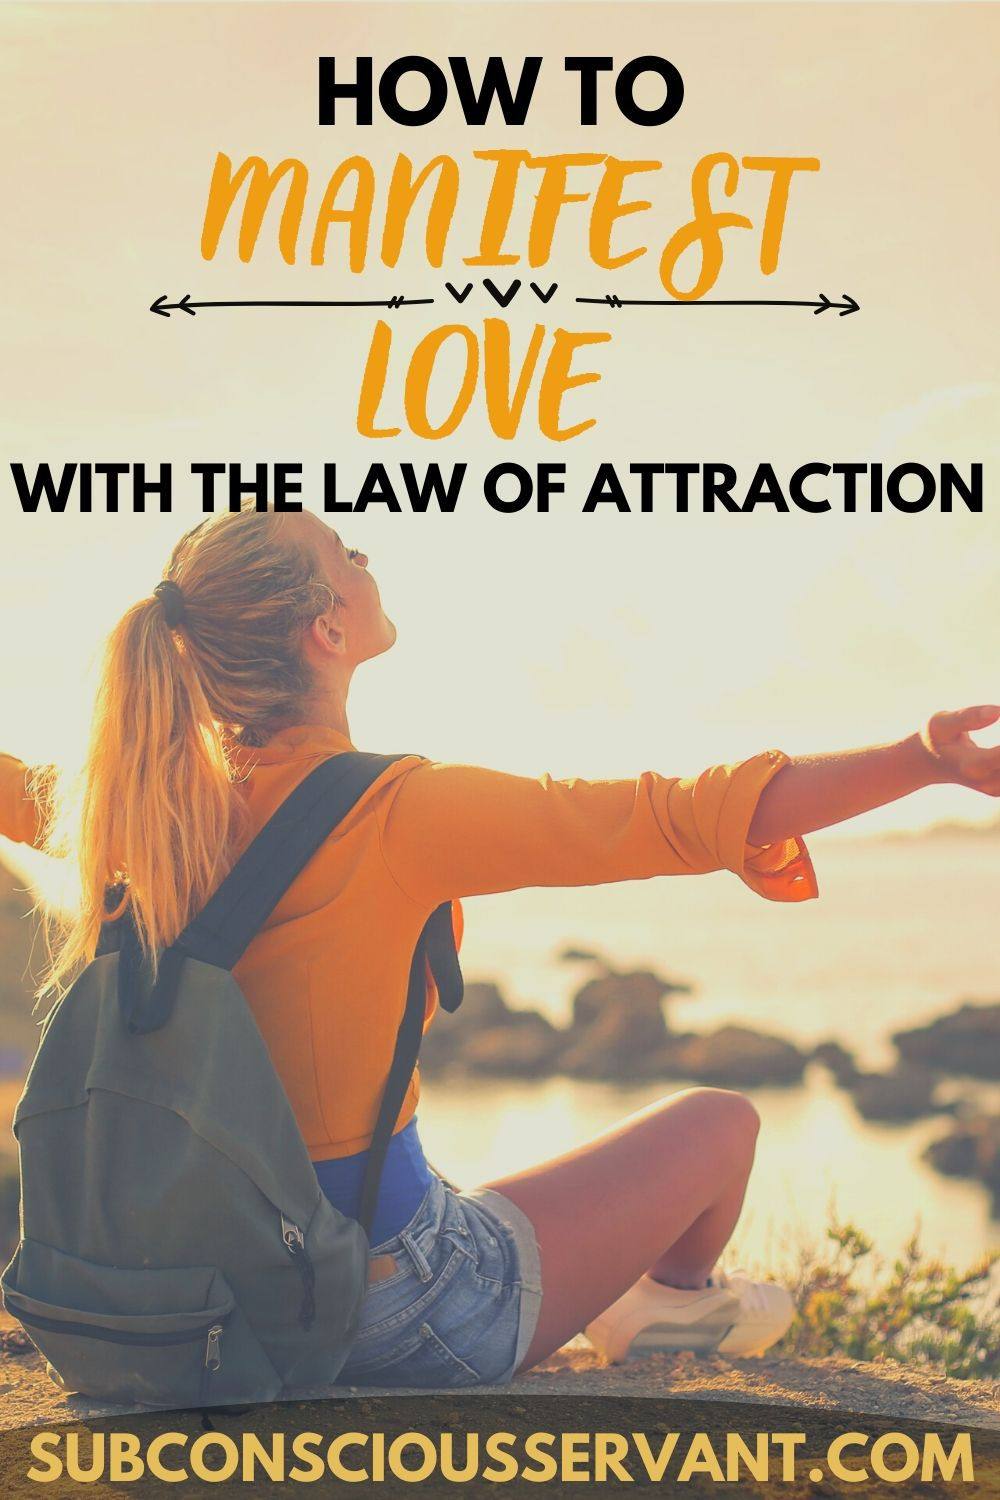 How To Attract Love Spiritually Using The Law of Attraction